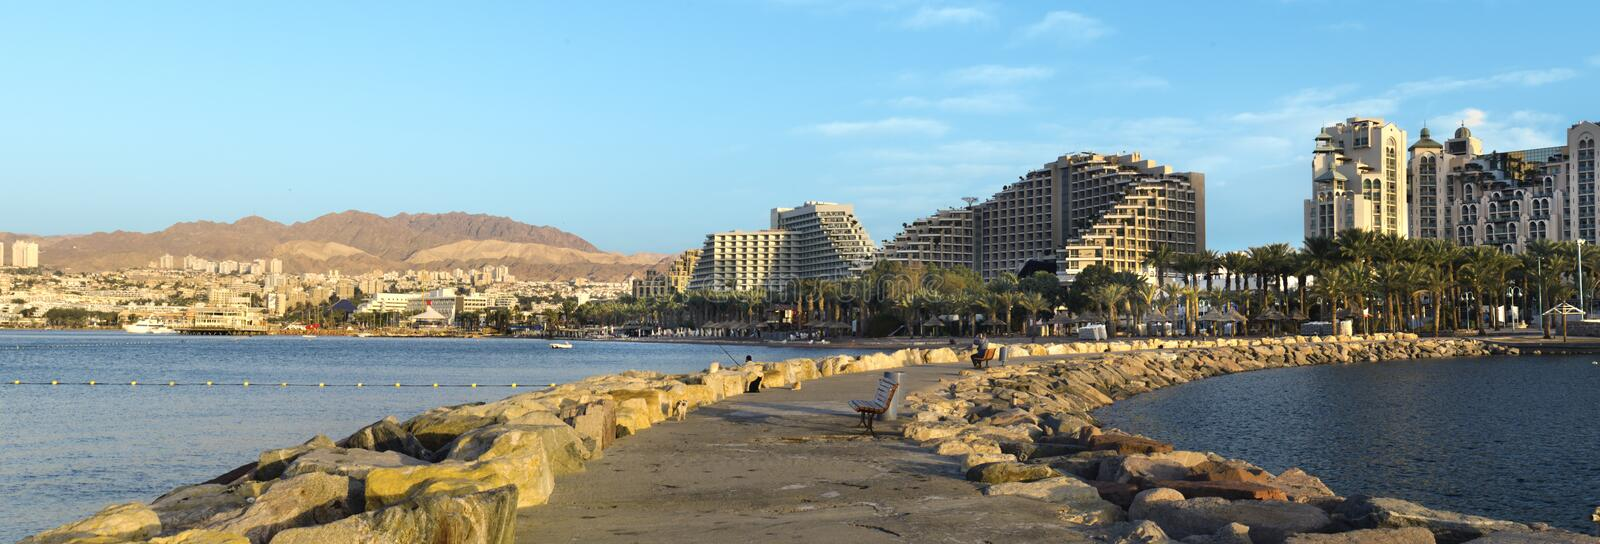 Panoramic view on resort hotels, Eilat, Israel. This shot was taken on the northern beach of Eilat, Israel stock images